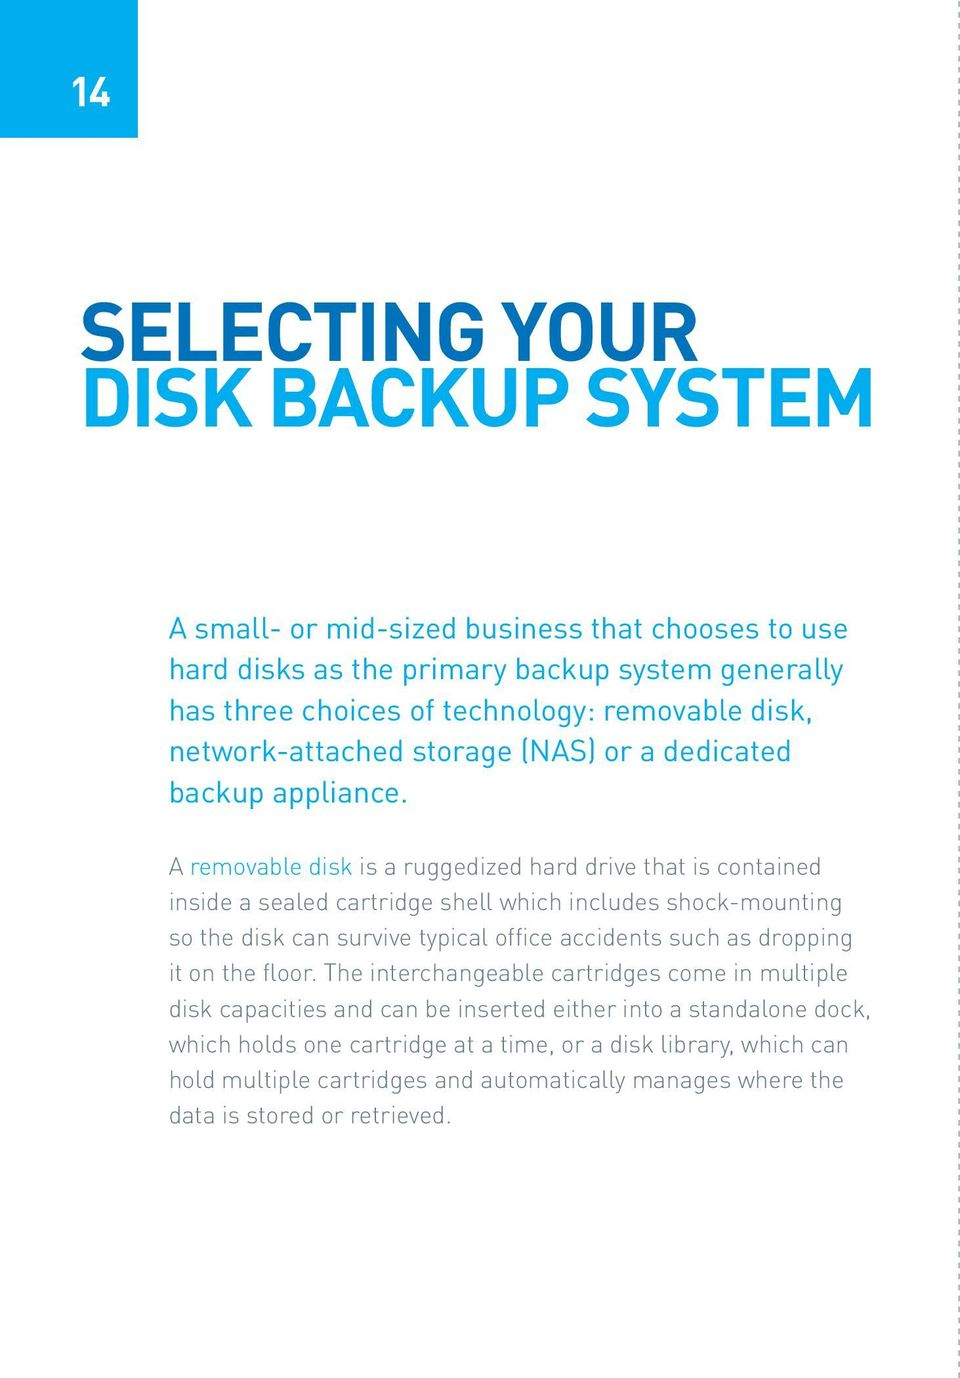 A removable disk is a ruggedized hard drive that is contained inside a sealed cartridge shell which includes shock-mounting so the disk can survive typical office accidents such as